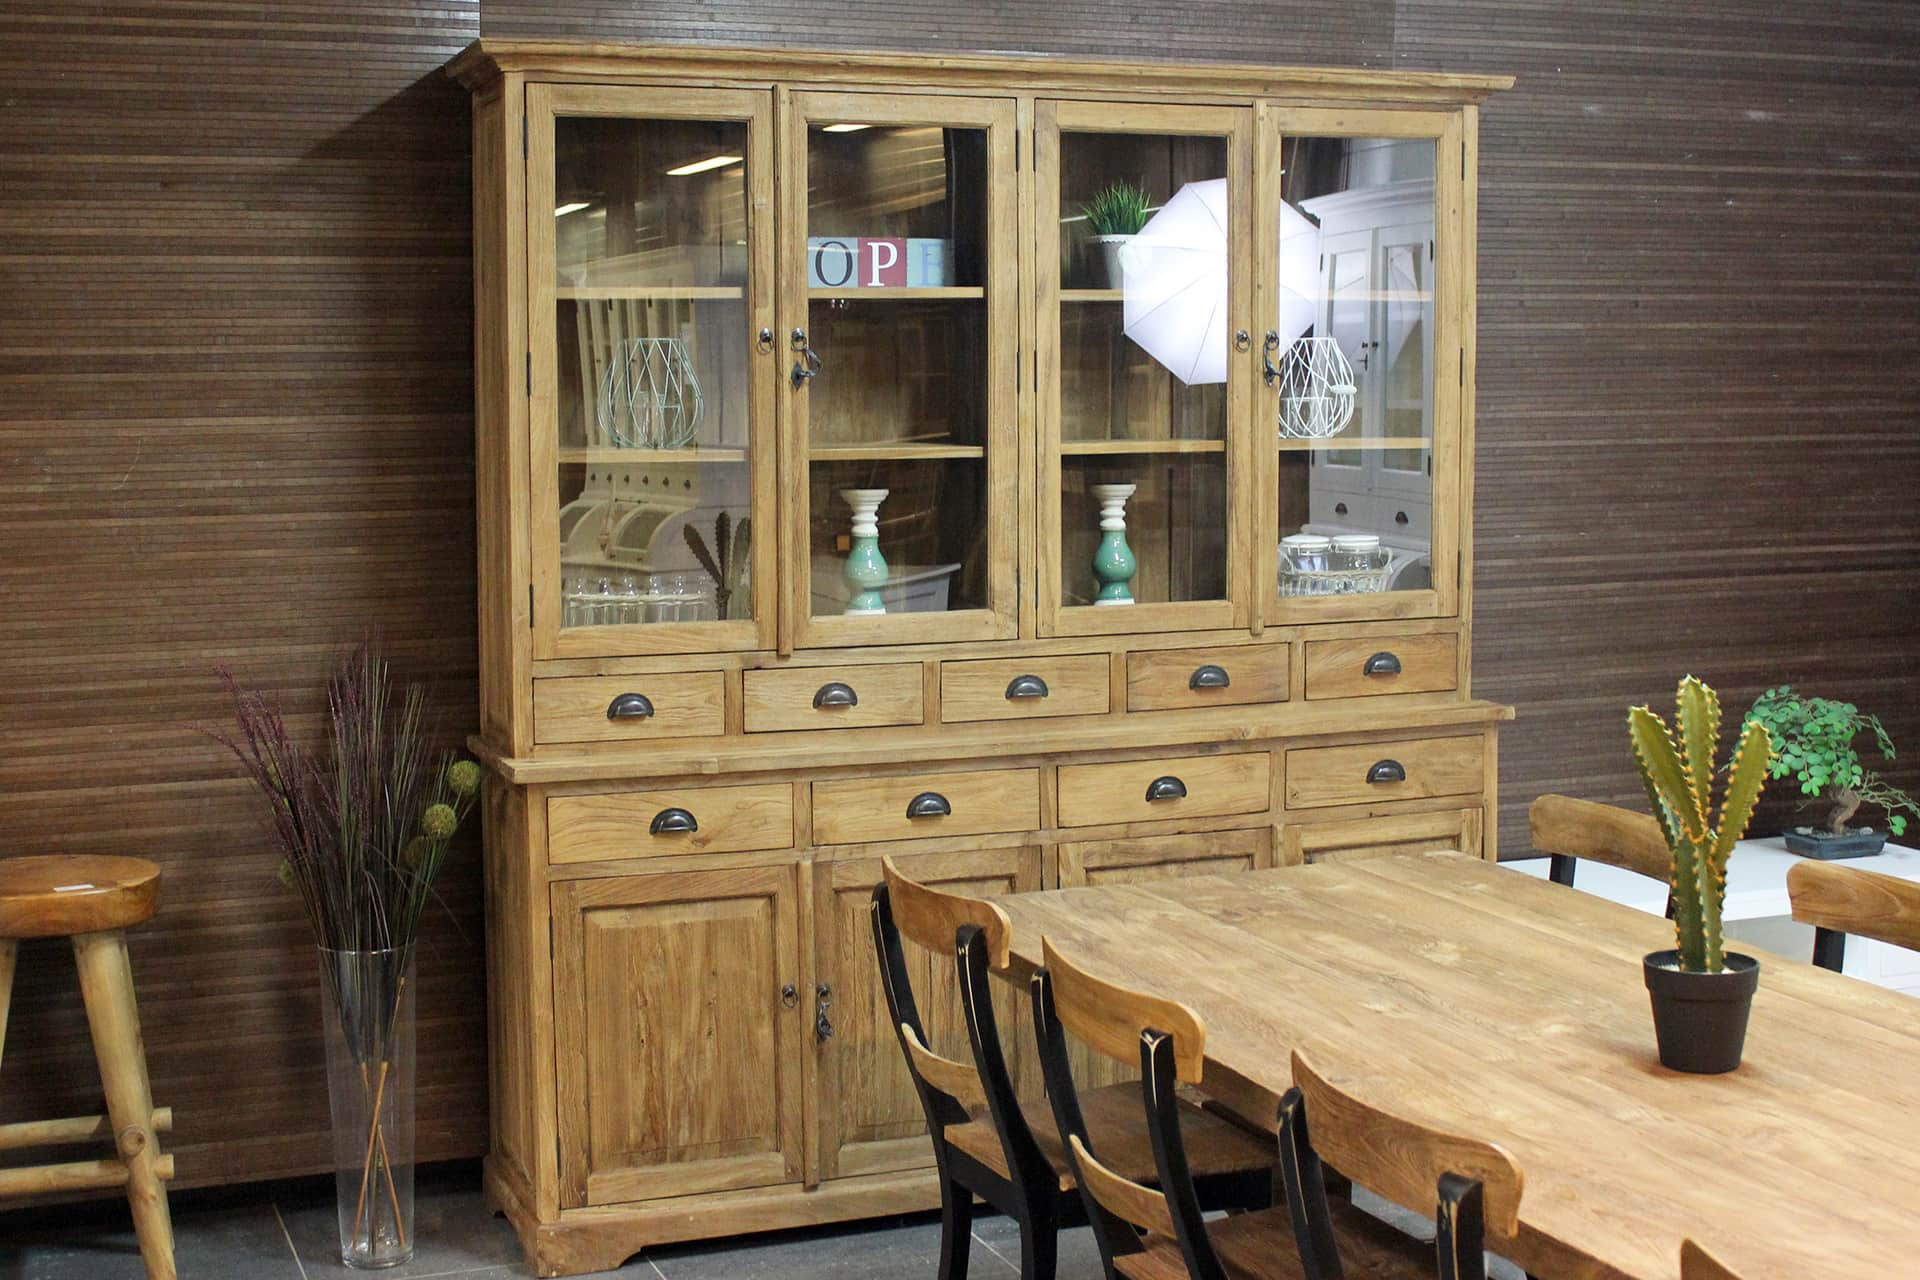 Teak Lebar 210 Old | teak buffet cabinet with drawers in brushed old teak. Rural cupboard with revolving doors, teak from Indonesia - furniture shop TEAK2.